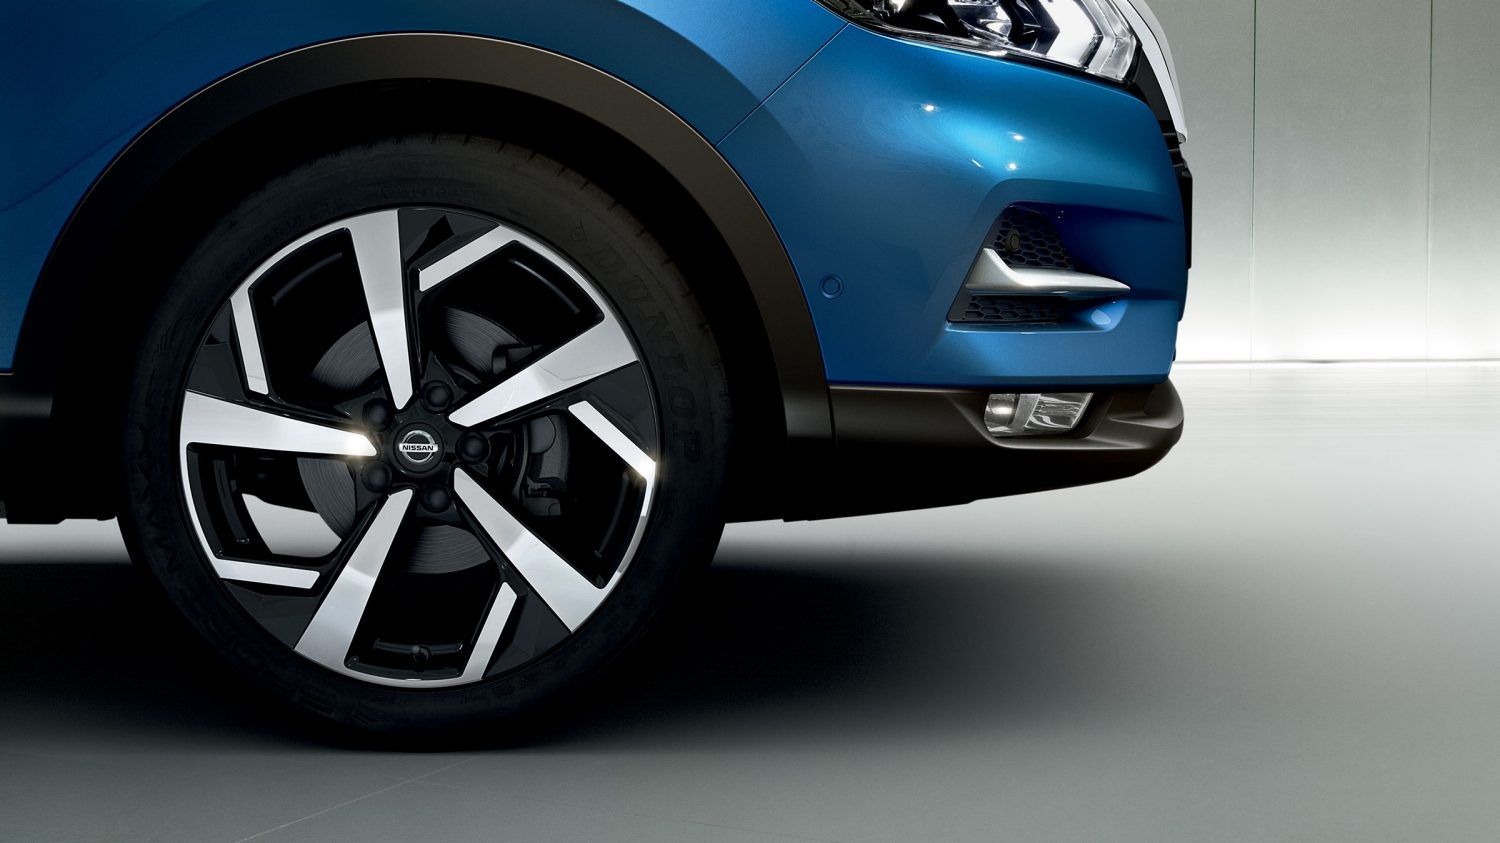 Alloy Wheels - New Nissan Qashqai